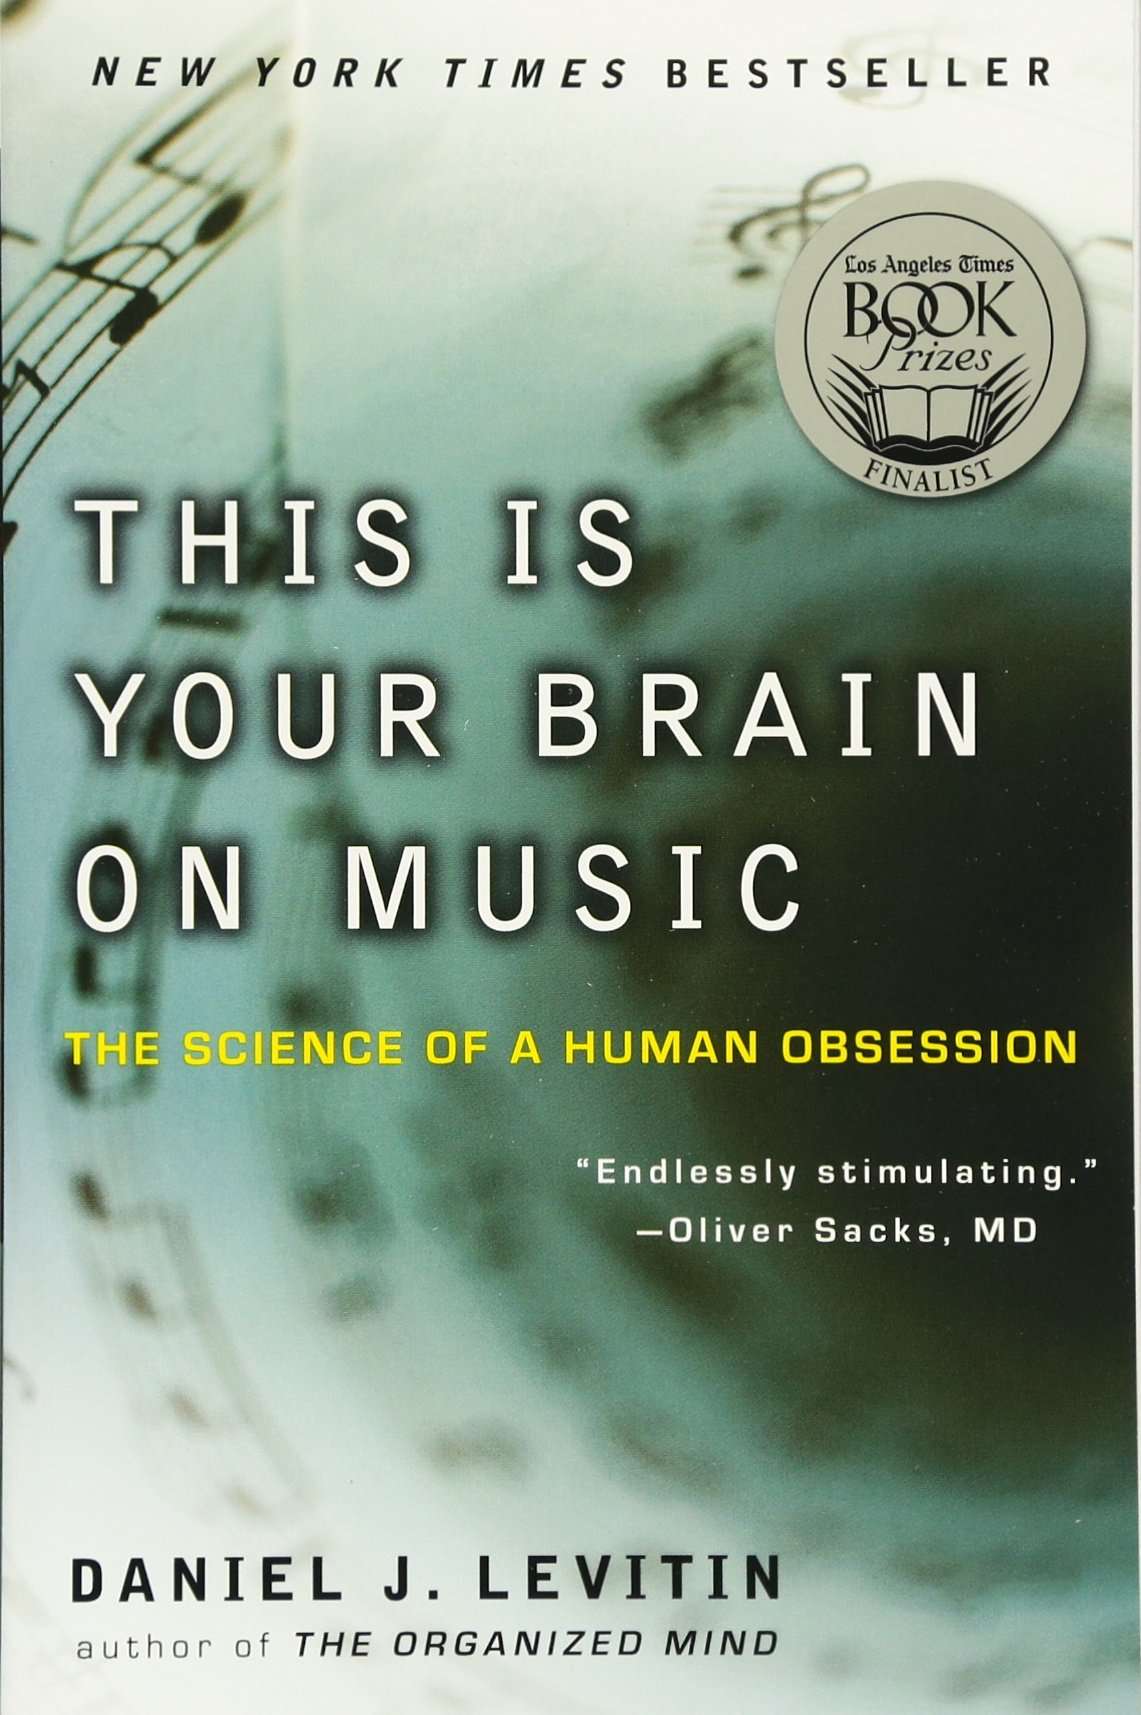 This Your Brain Music Obsession